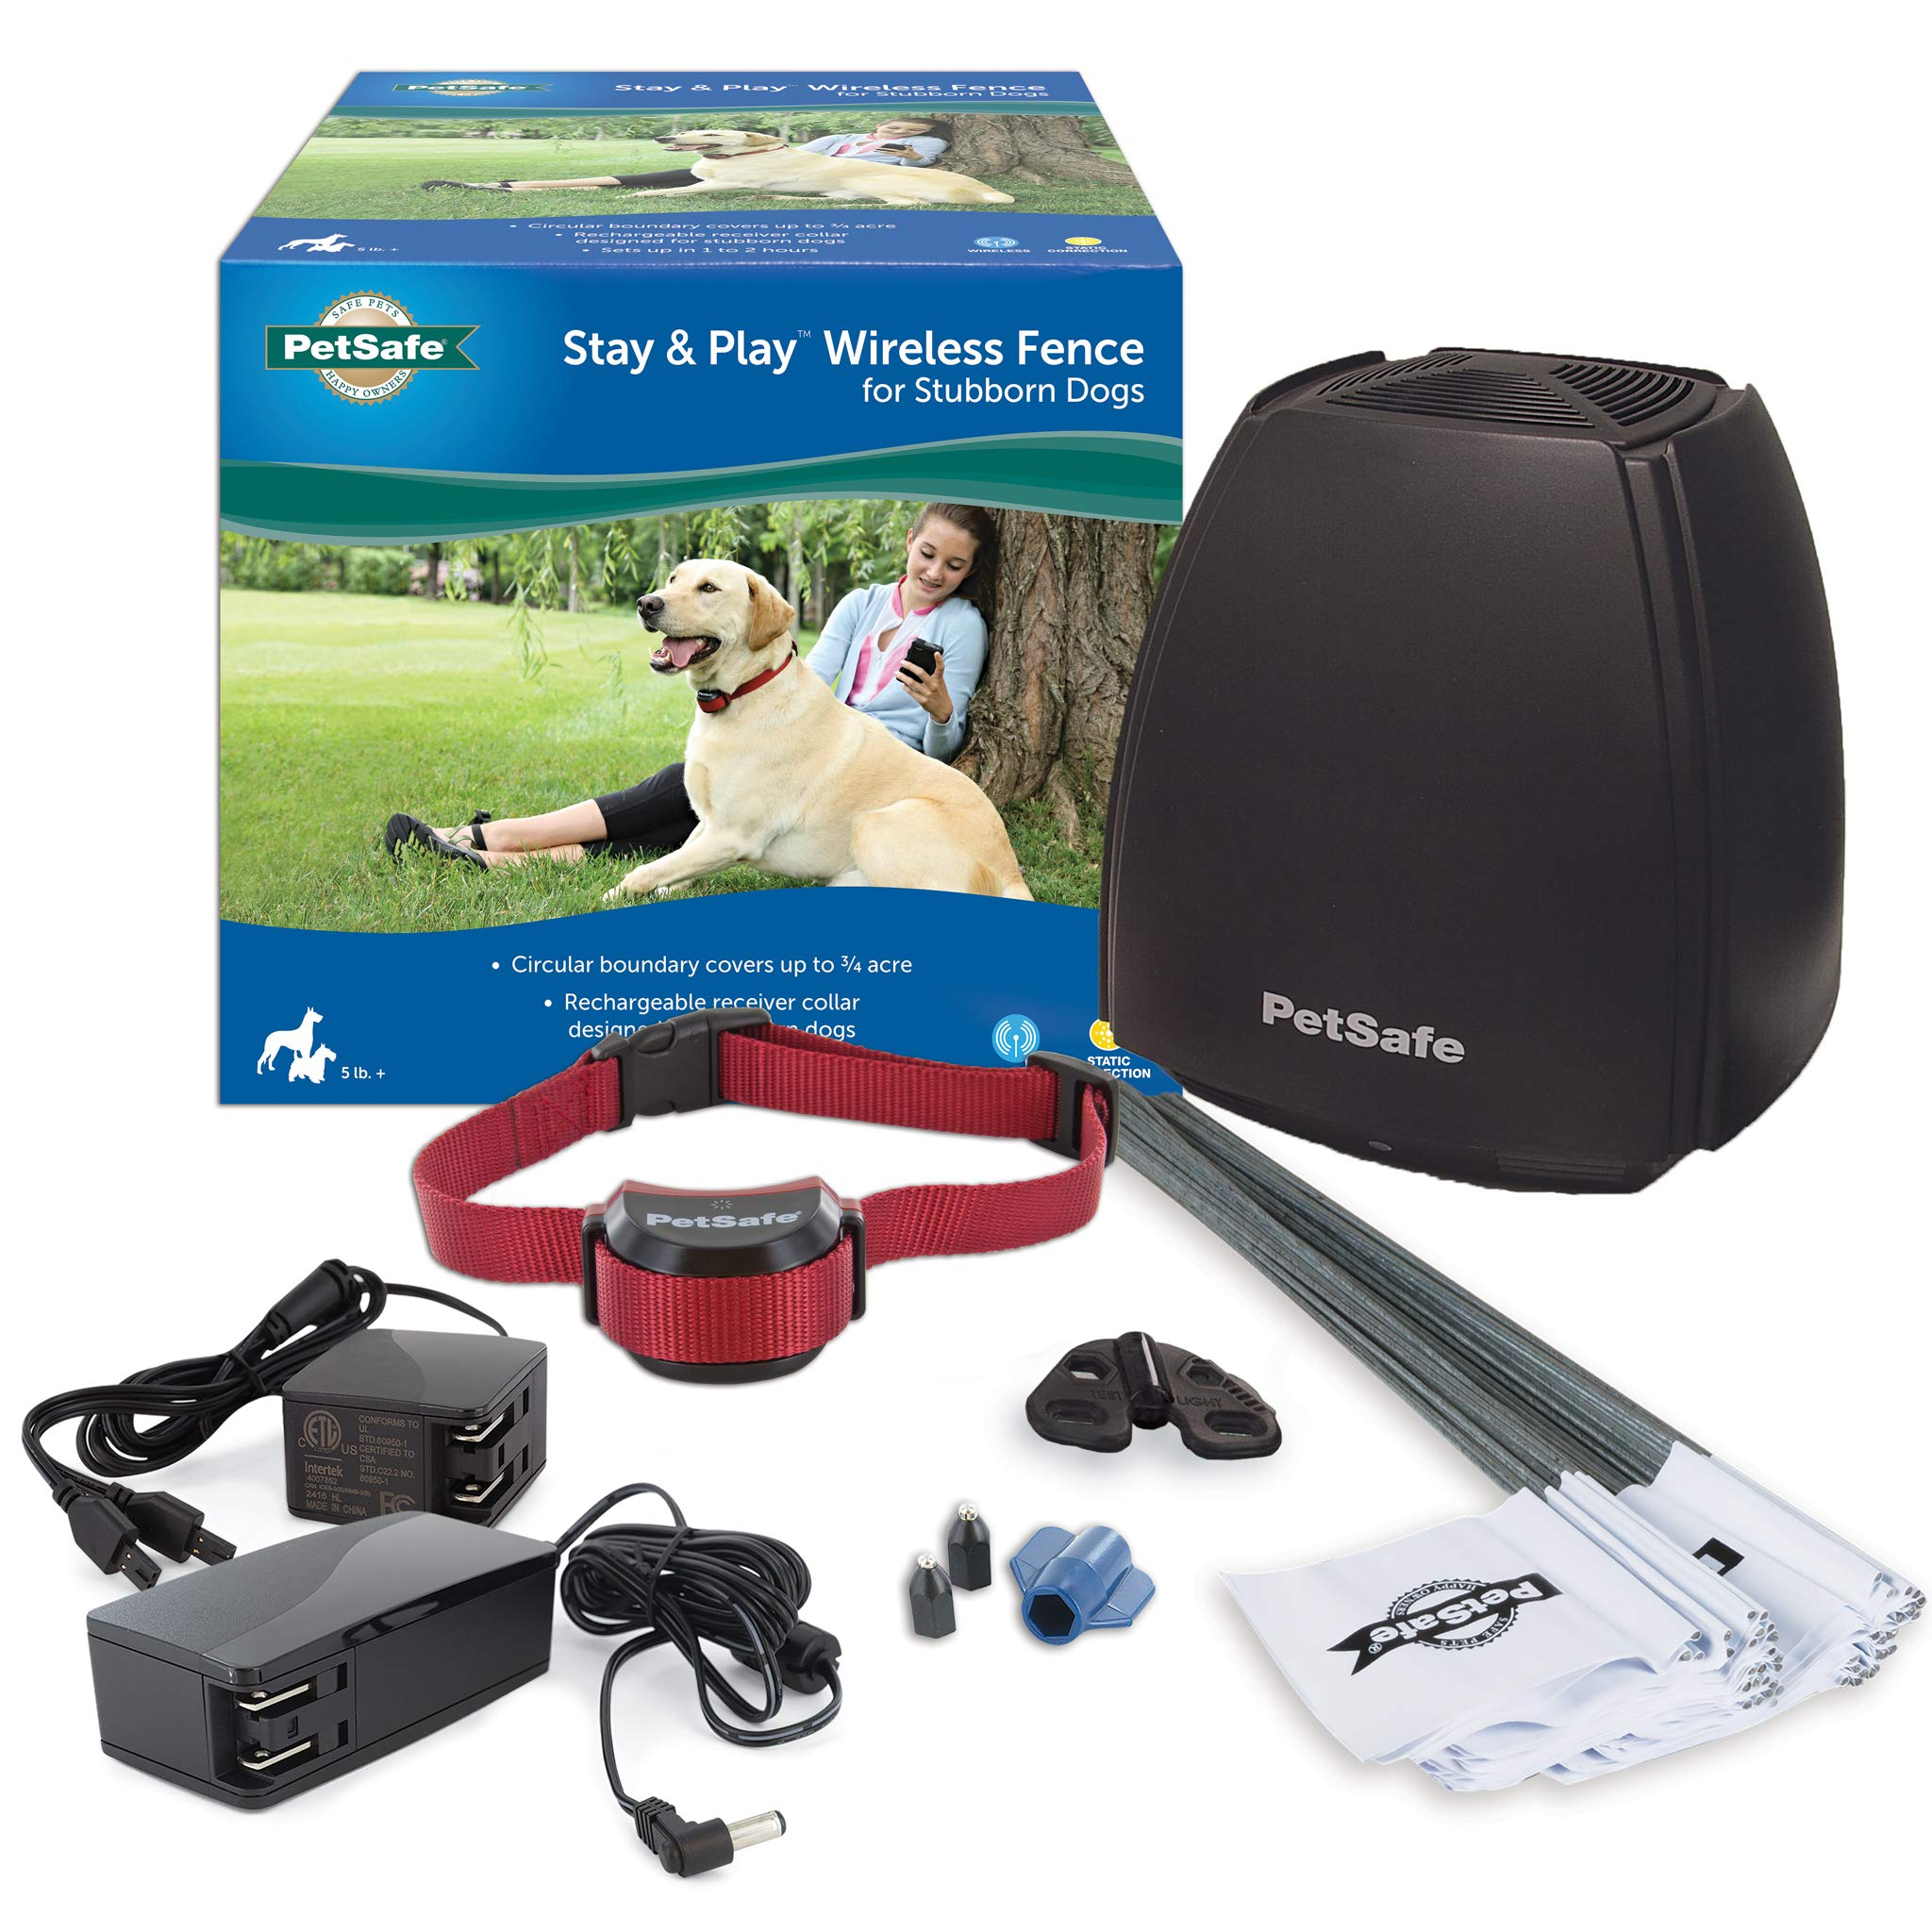 PetSafe Stay & Play Wireless Fence for Stubborn Dogs – Above Ground Electric Pet Fence – from the Parent Company of…